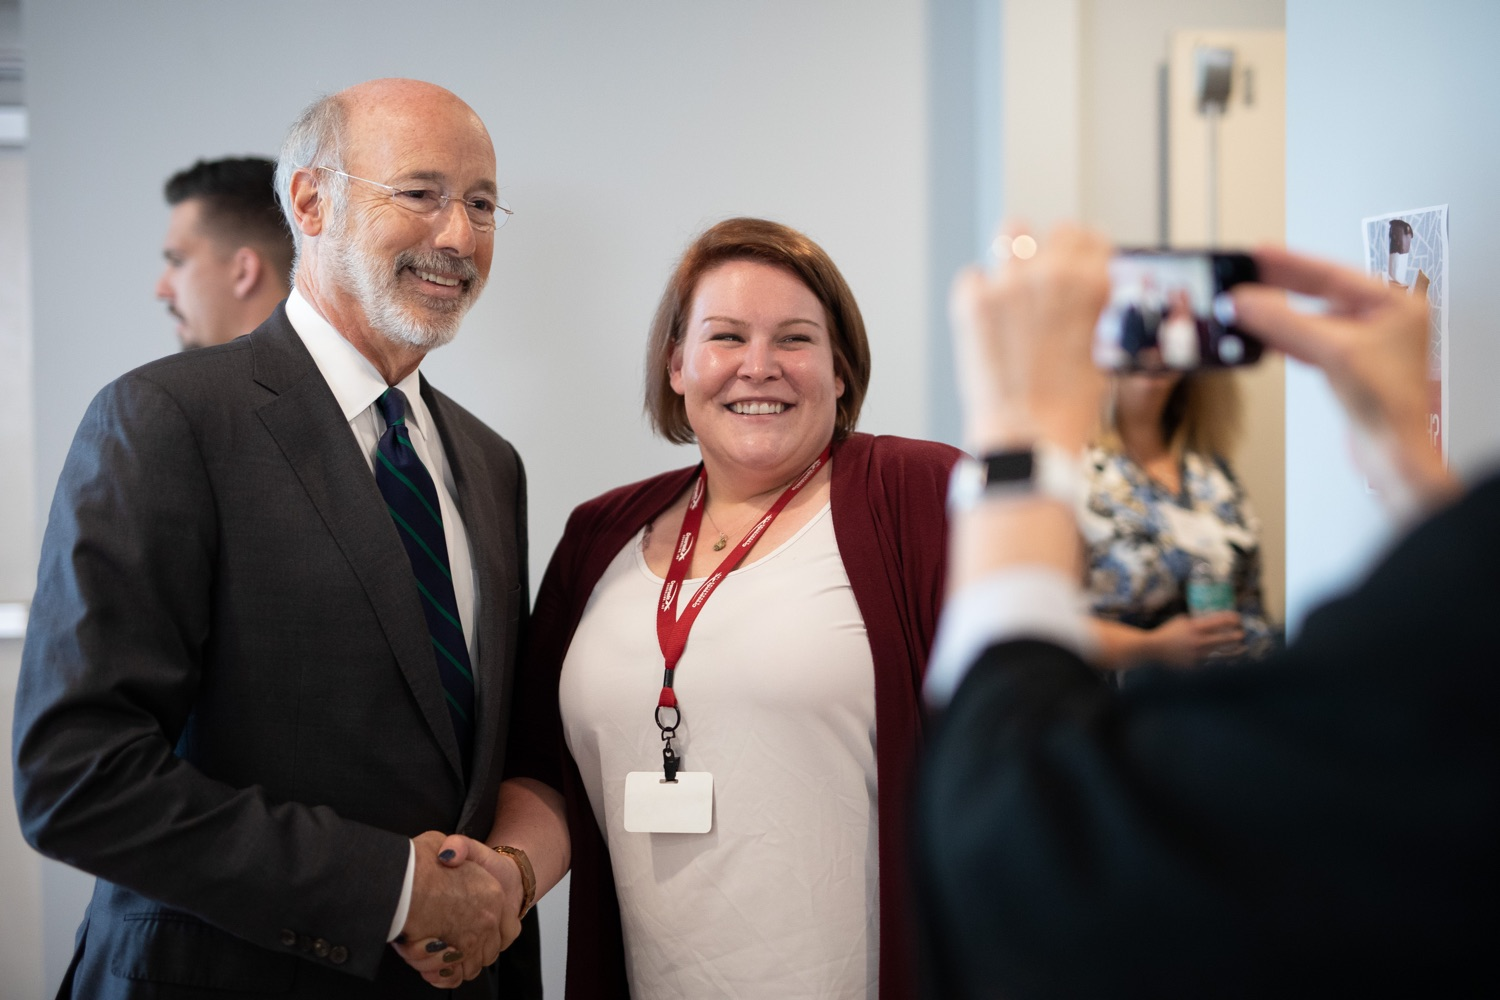 "<a href=""http://filesource.abacast.com/commonwealthofpa/photo/17467_gov_opioids_dz_010.JPG"" target=""_blank"">⇣ Download Photo<br></a>Boalsburg, PA  Governor Tom Wolf posing for a photo with summit attendees. Governor Tom Wolf today kicked off his administrations first Opioid Command Center Opioid Summit: Think Globally, Act Locally, which brought together 200 individuals helping their communities fight the opioid crisis, including community organizations, non-profits, schools, health care workers, addiction and recovery specialists, and families affected by the opioid crisis.  Tuesday, October 1, 2019"